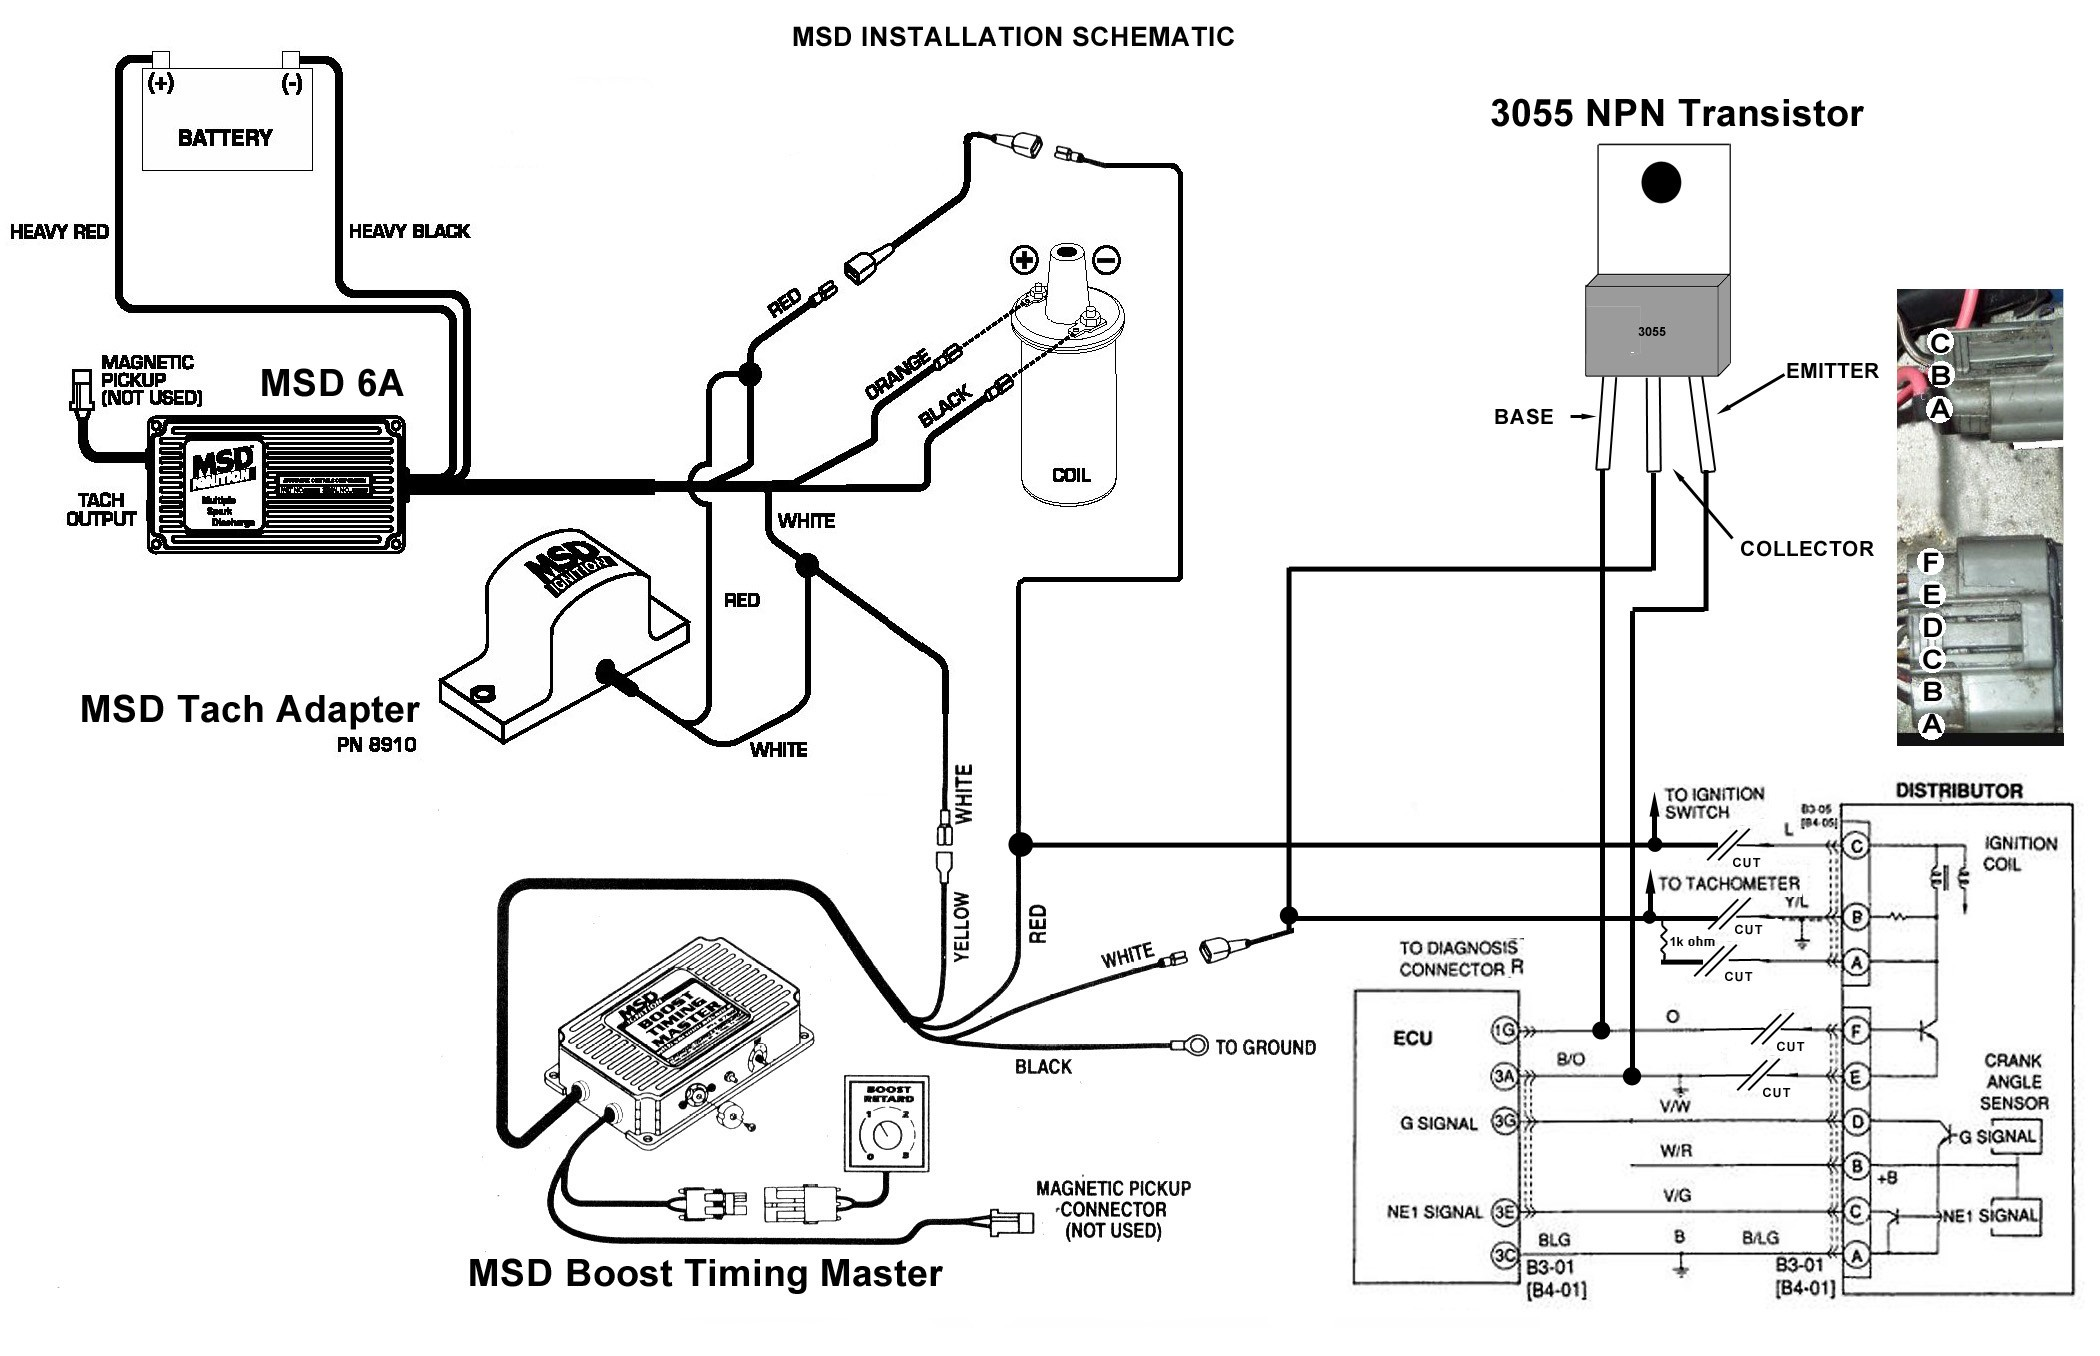 [TBQL_4184]  E517F9C Wiring Diagram For Mazda Bongo | Wiring Resources | Mazda Wiring Diagrams Online |  | Wiring Resources